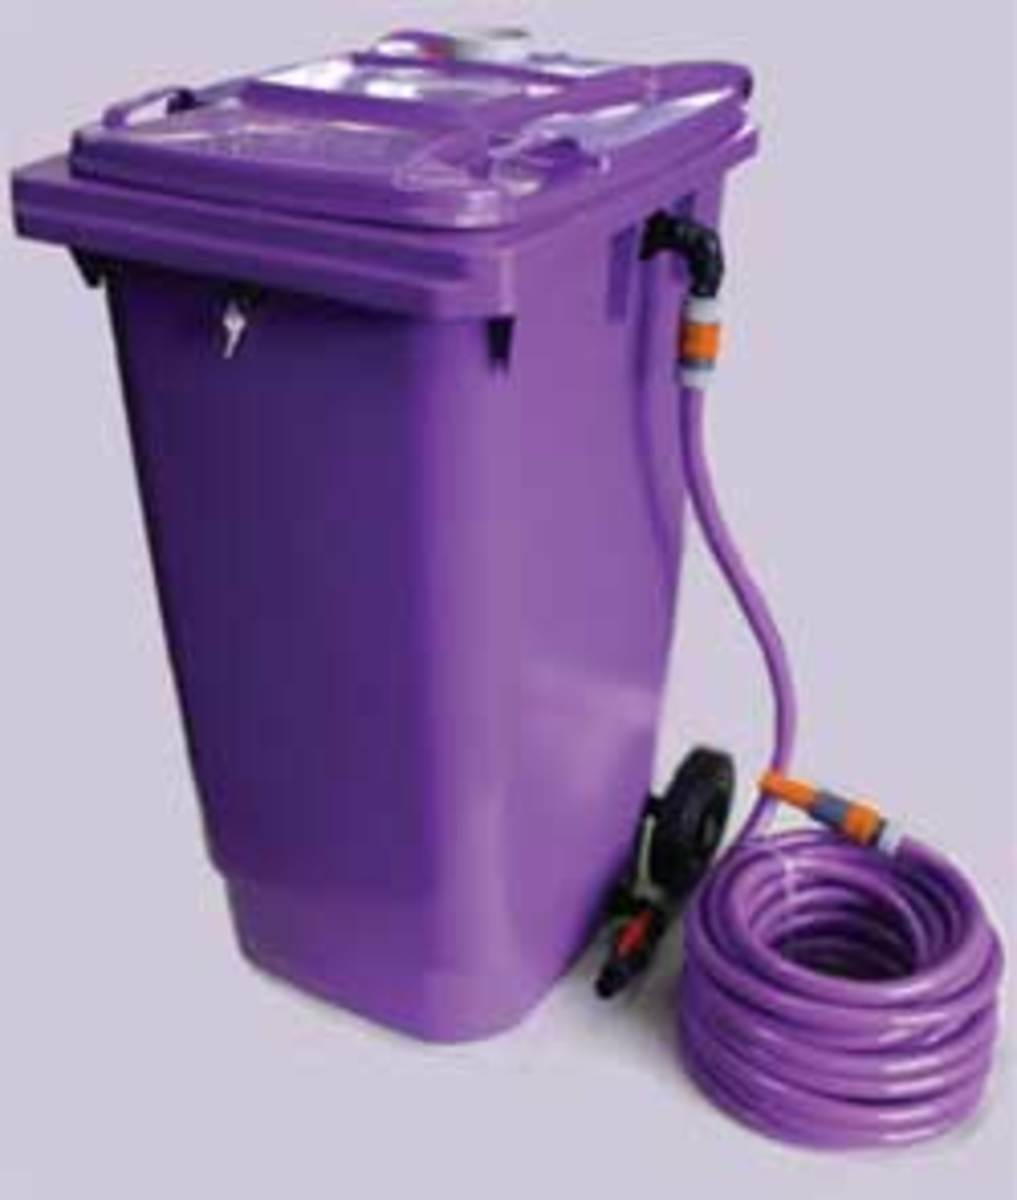 Greywater storage tank commercially available for under $500. notice the Lilac color!